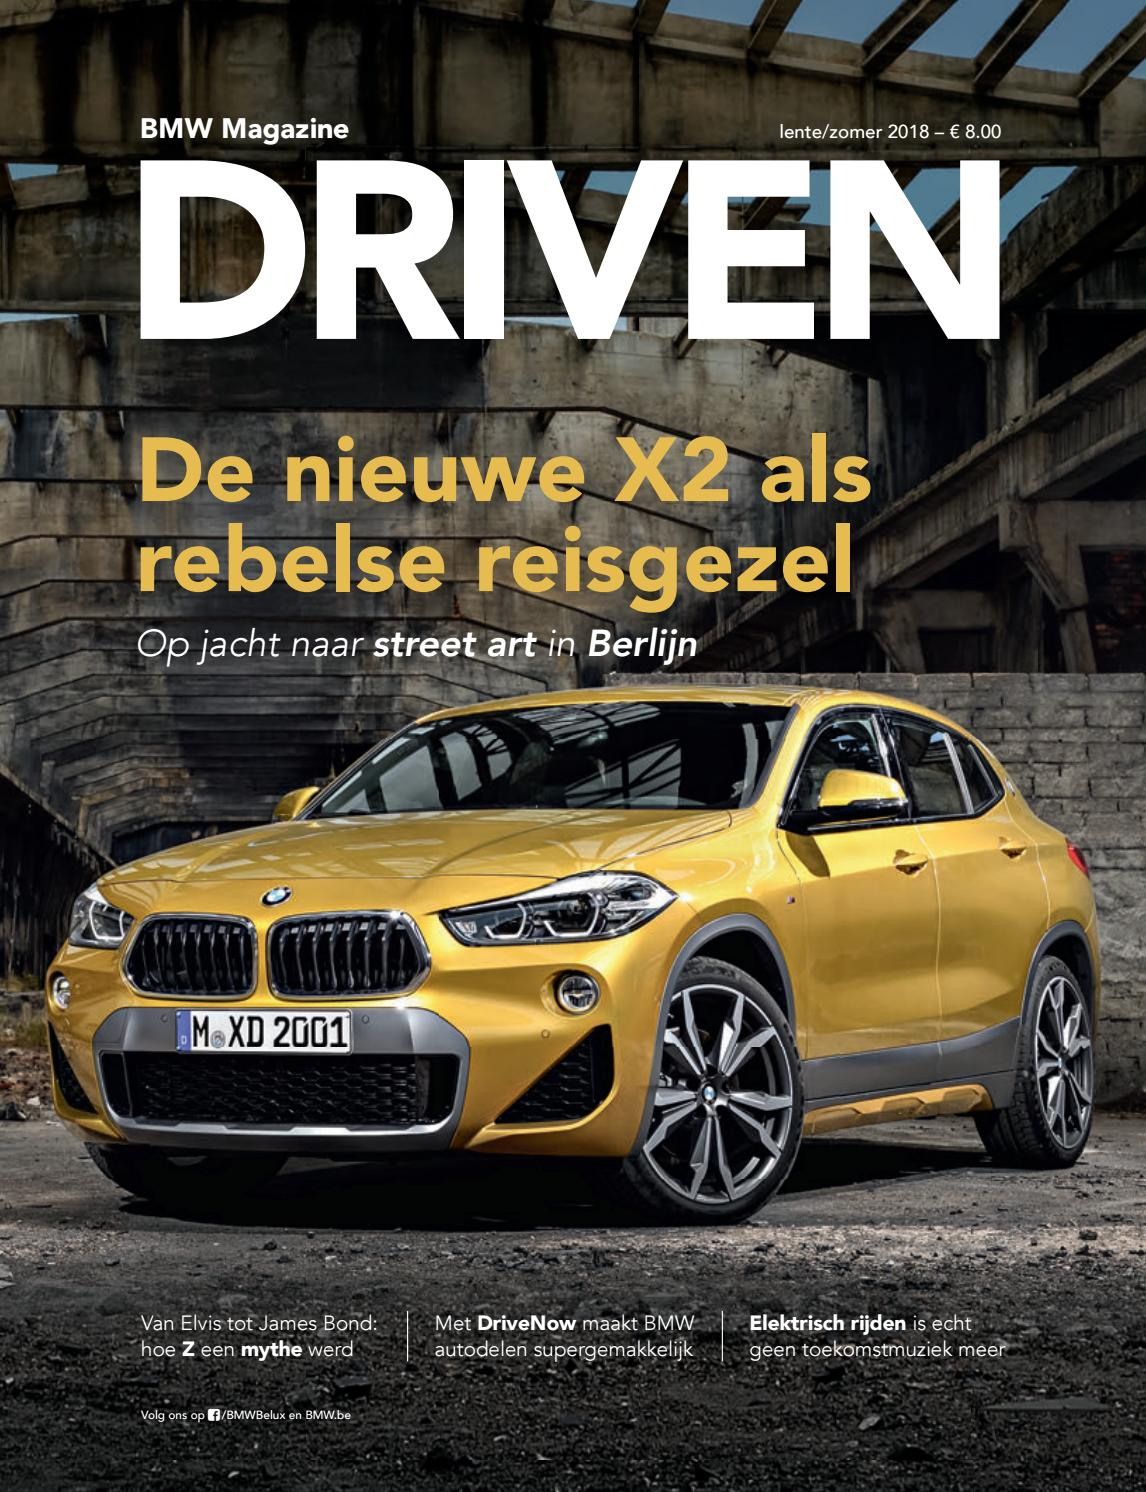 bmw magazine driven nl 2018 1 zomer by bmw group belux issuu. Black Bedroom Furniture Sets. Home Design Ideas